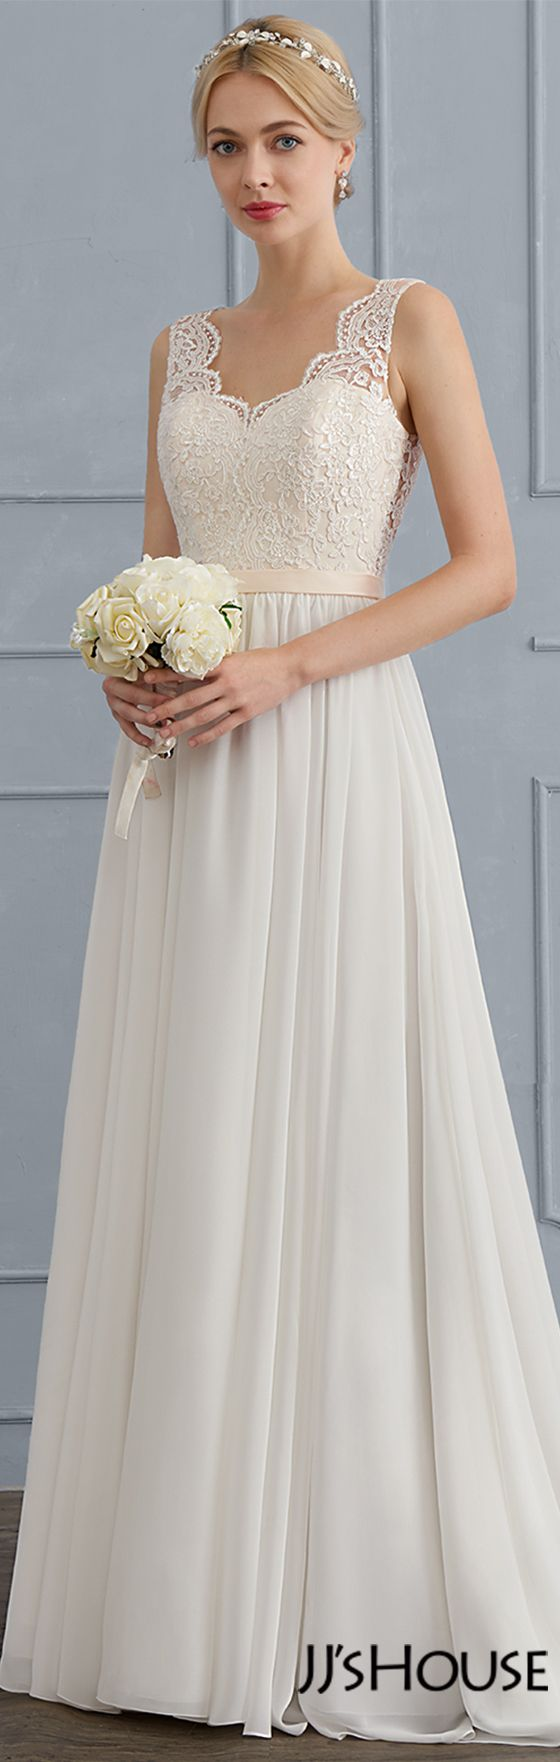 A-Line/Princess V-neck Sweep Train Chiffon Wedding Dress (002124279 ...